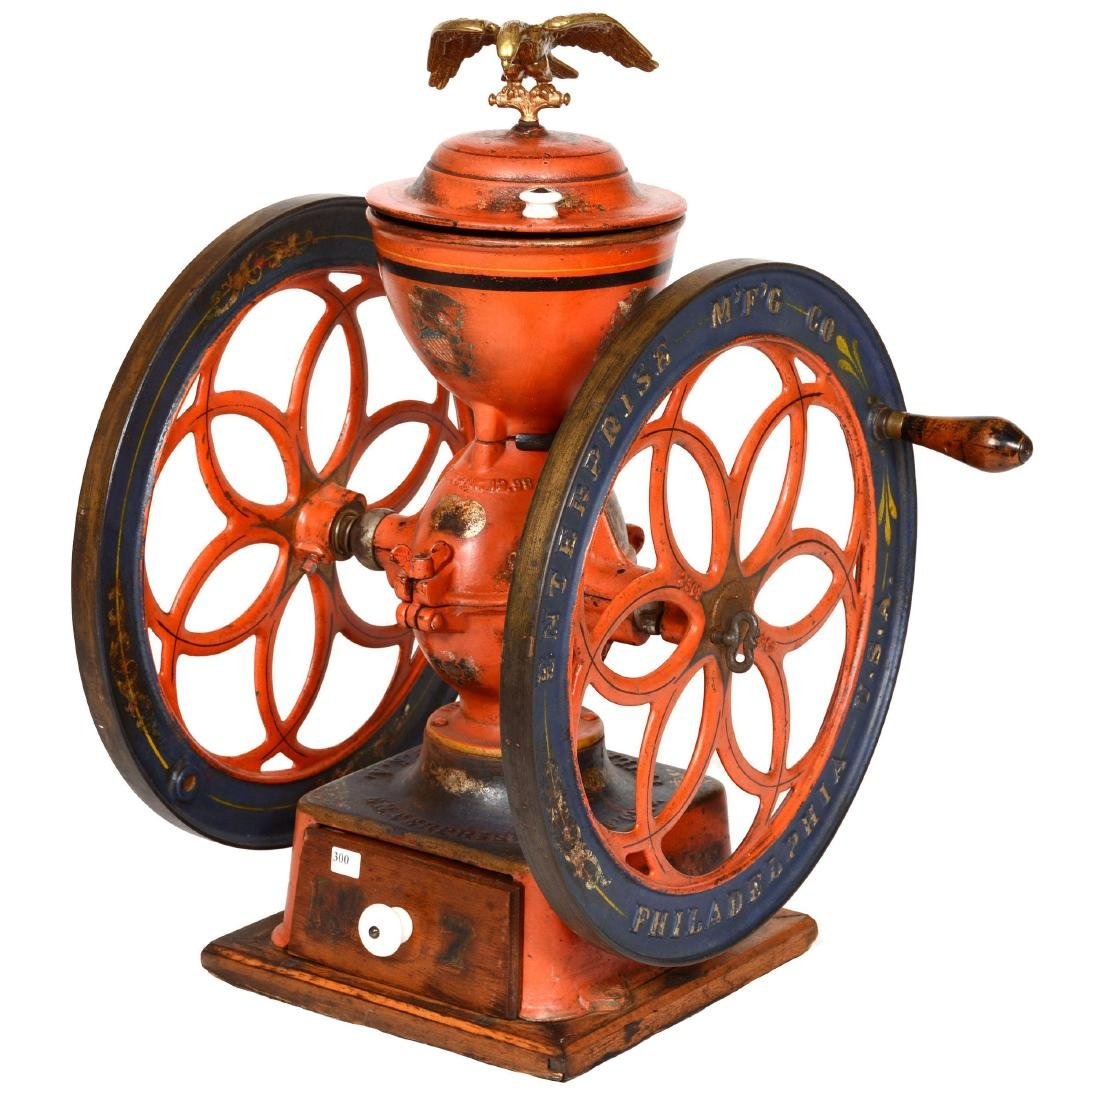 Original Cast Iron Coffee Grinder